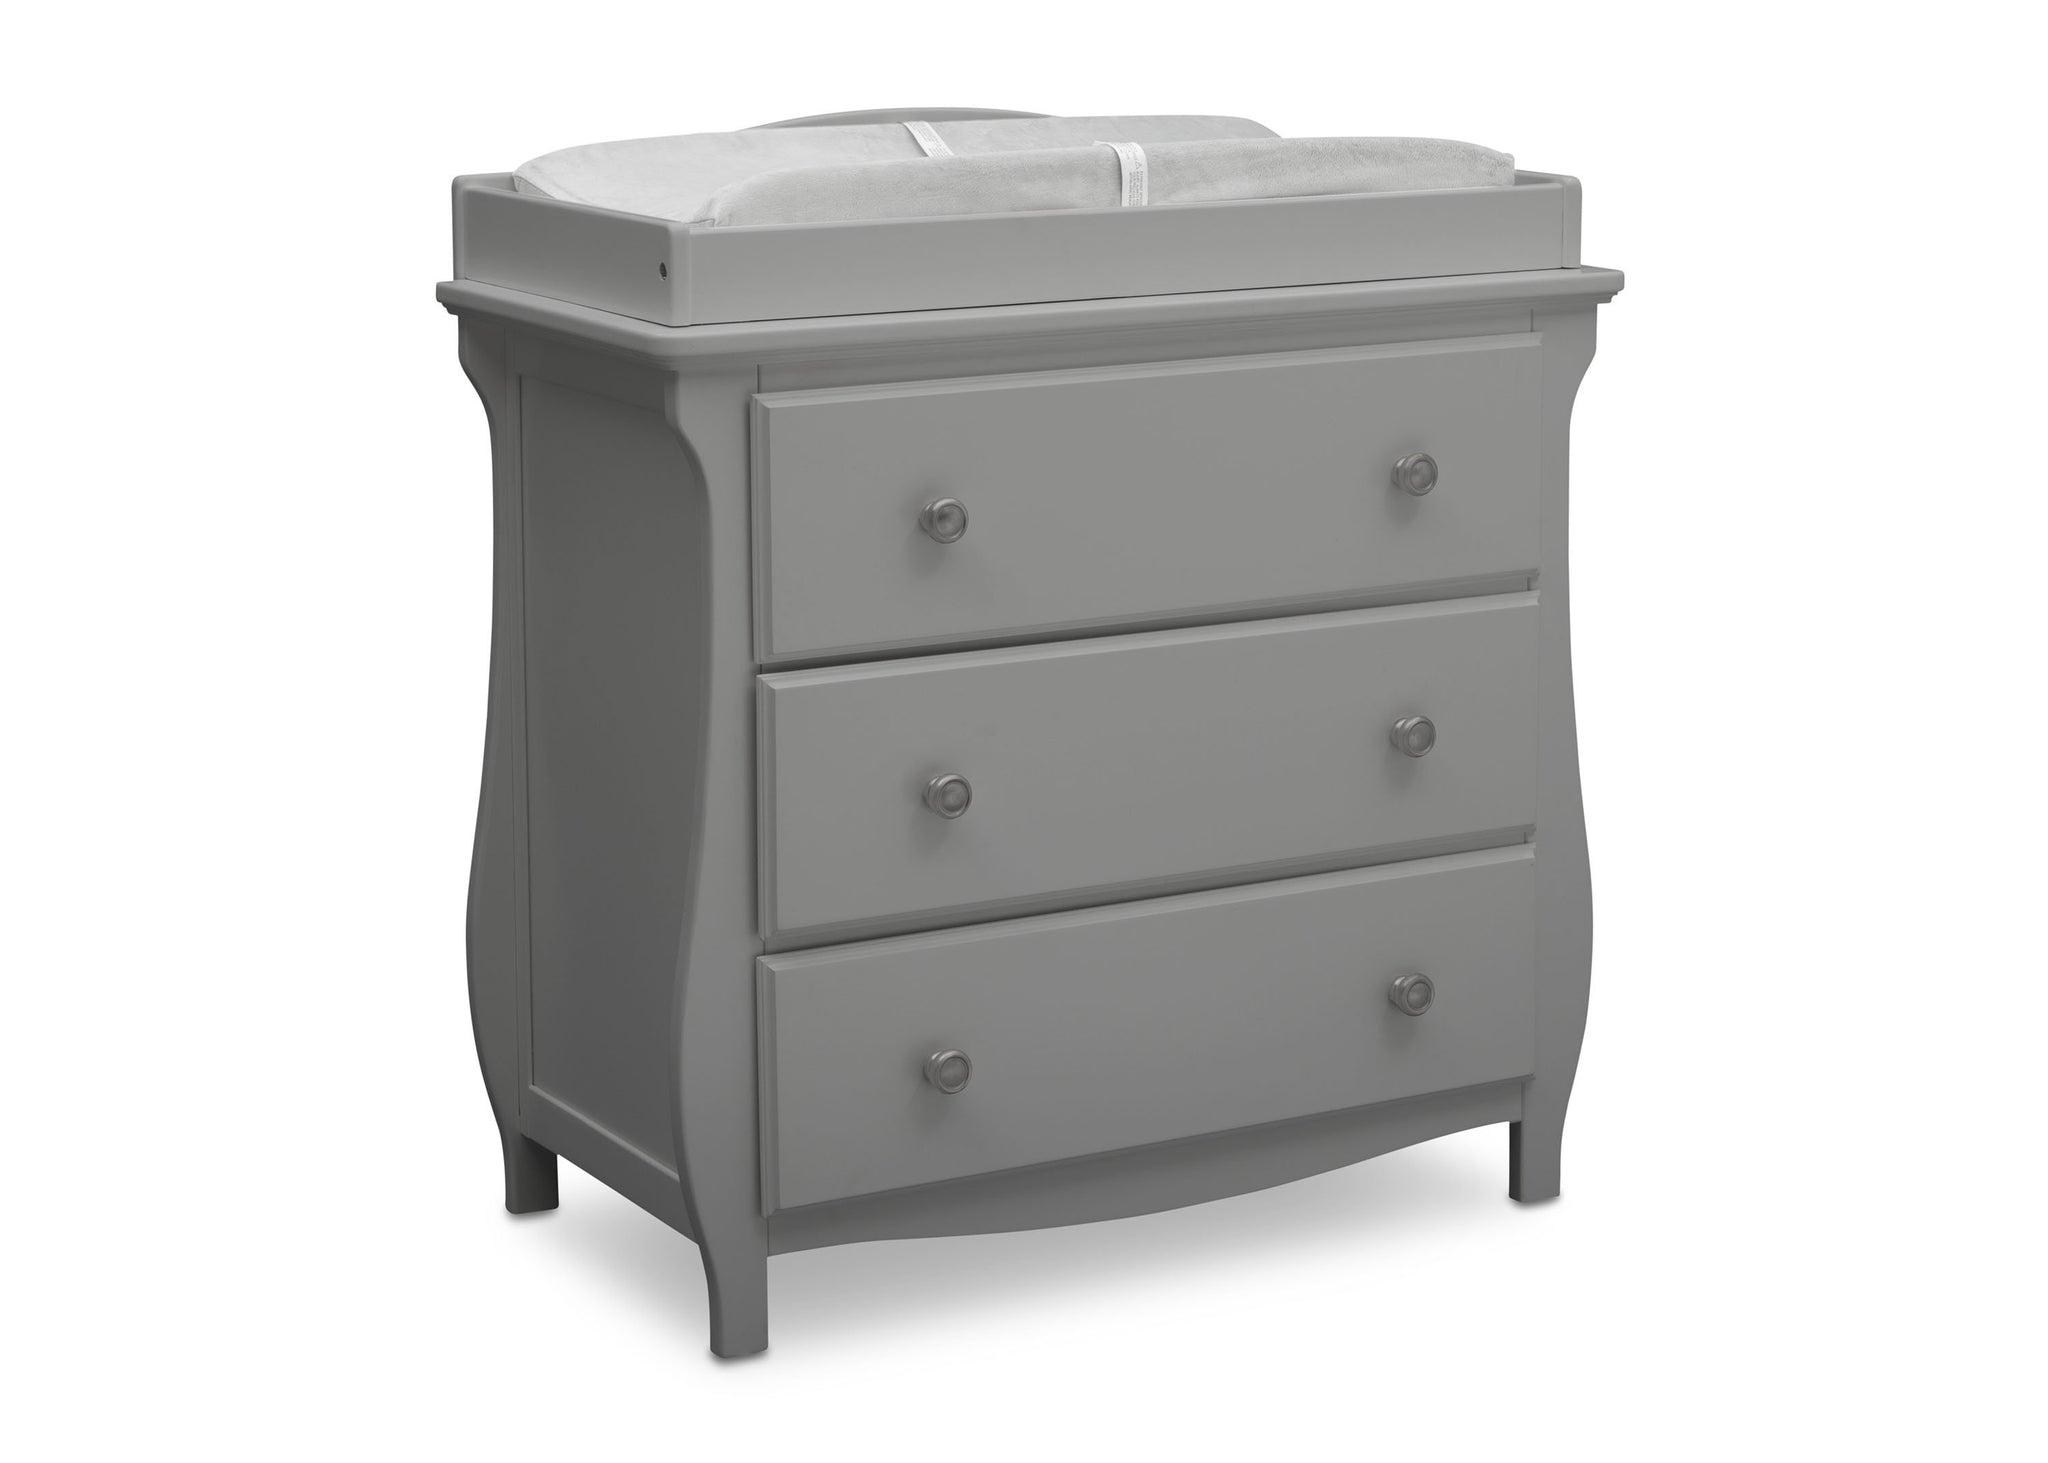 Delta Children Grey (026) Lancaster 3 Drawer Dresser with Changing Top (552030), Sideview, a3a